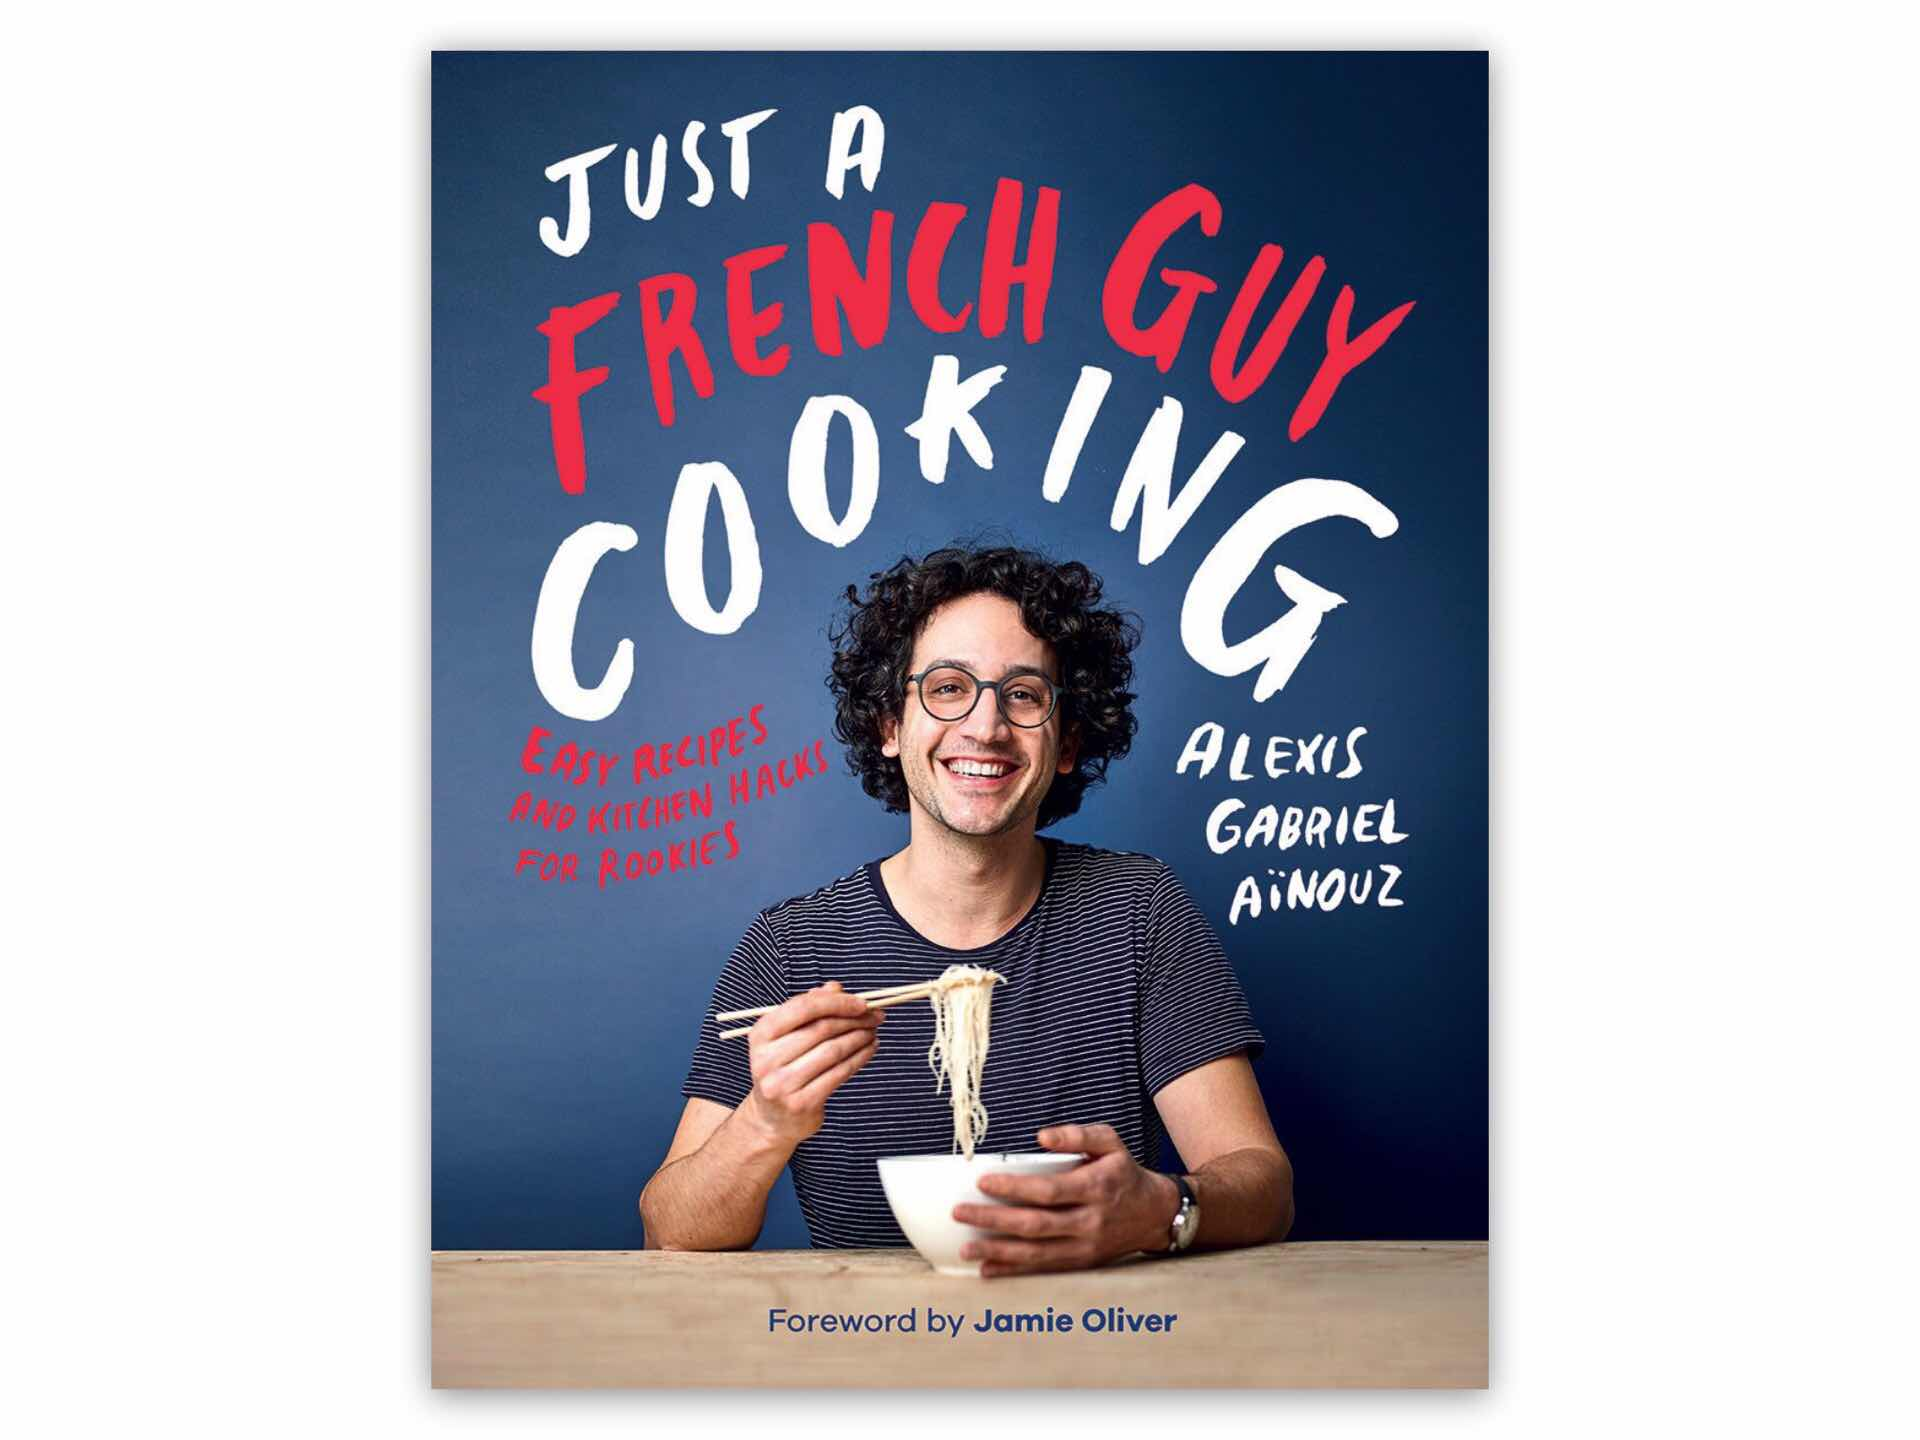 just-a-french-guy-cooking-by-alexis-gabriel-ainouz